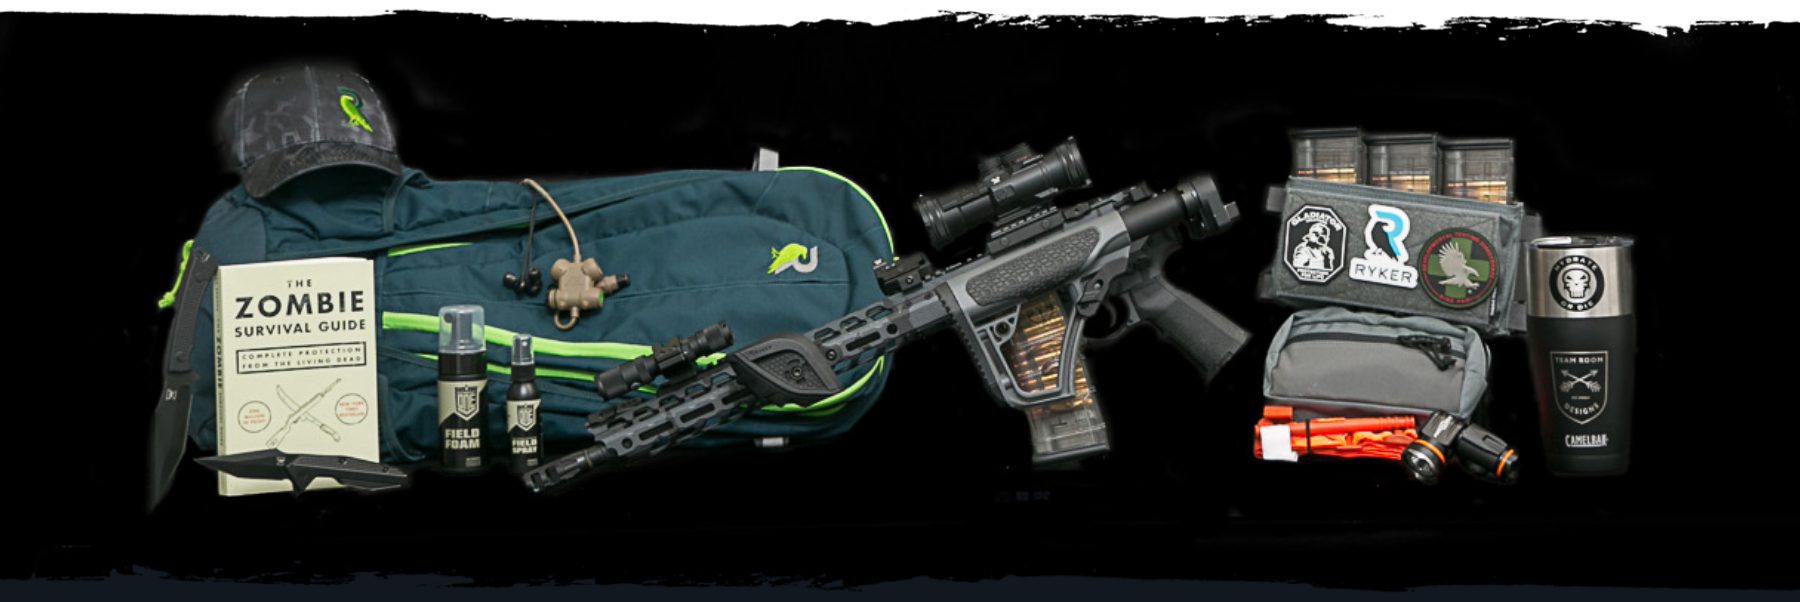 Zombie Defense Kit Products Included